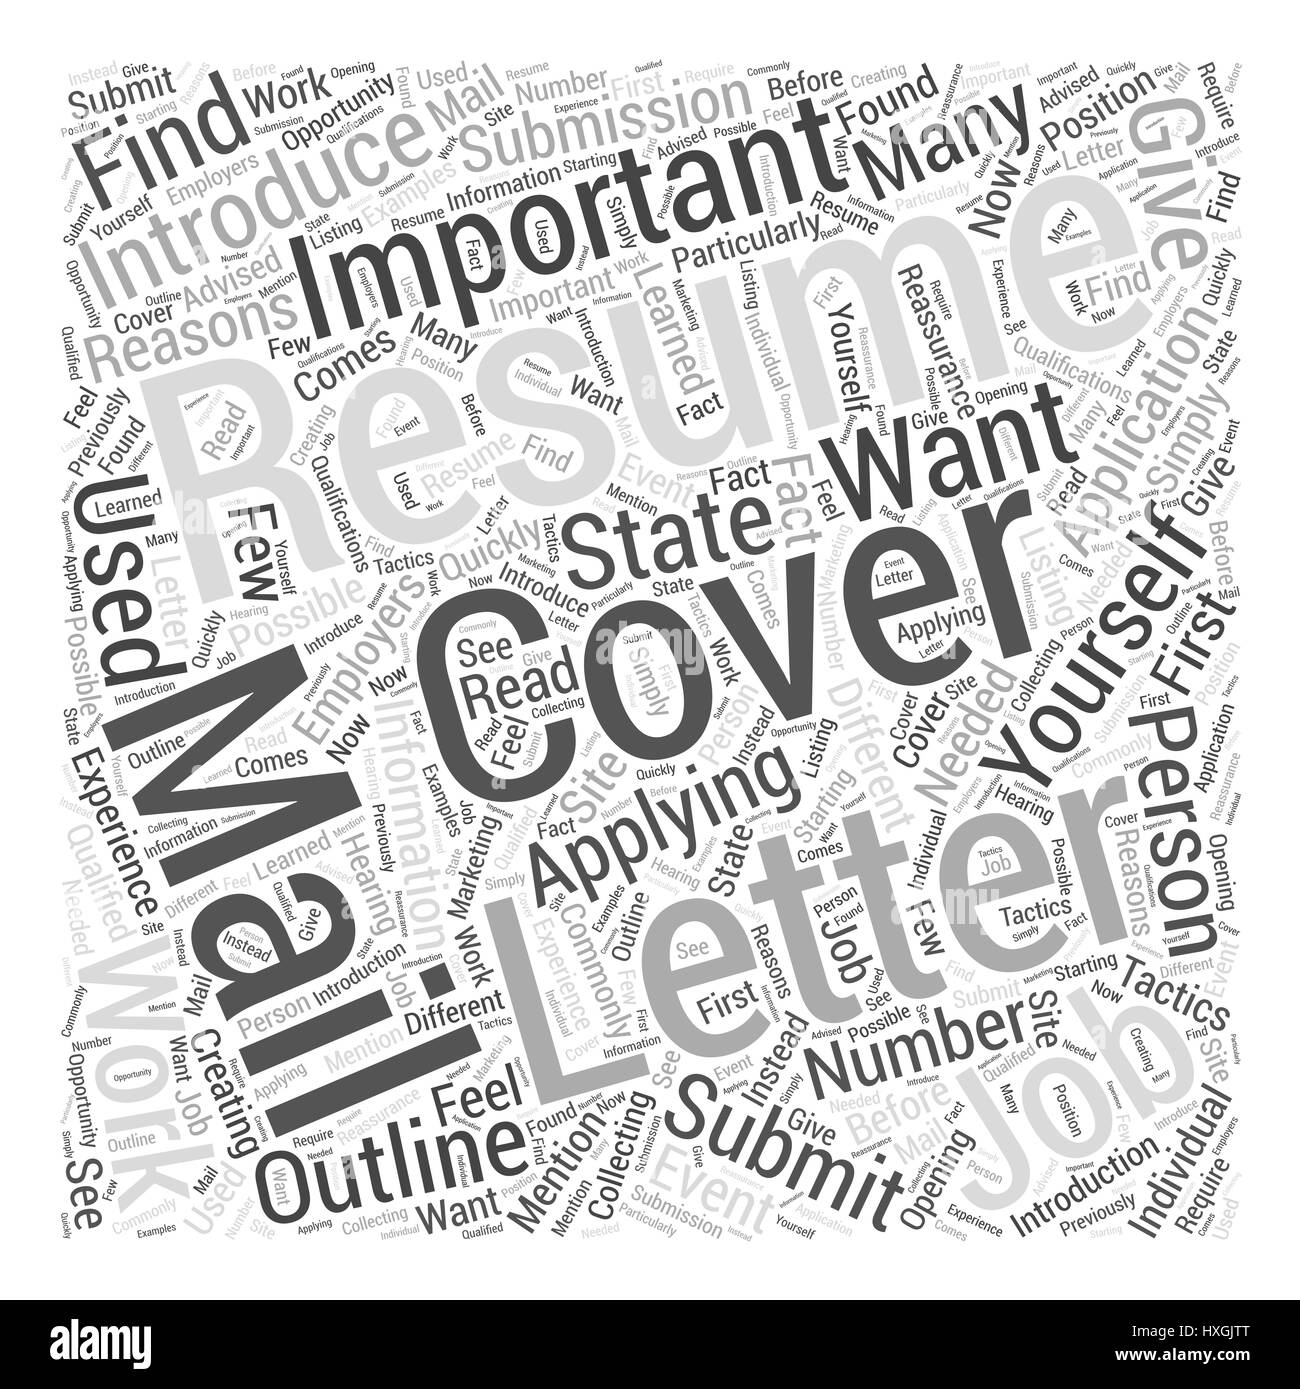 Resume Submission The Importance of Cover Letters Word Cloud Concept ...